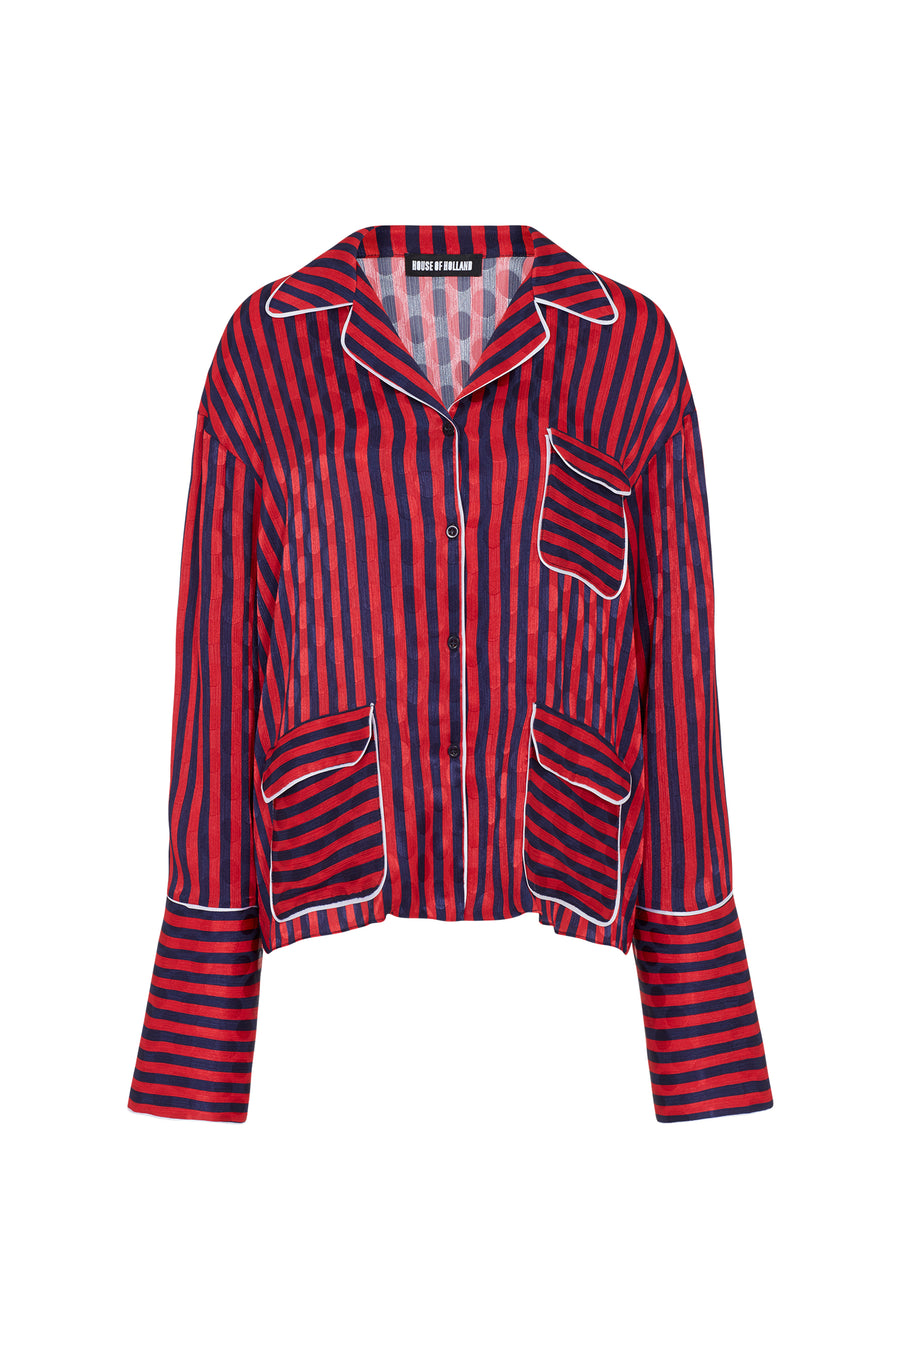 Red and Navy Stripped Pyjama Style Shirt by House of Holland